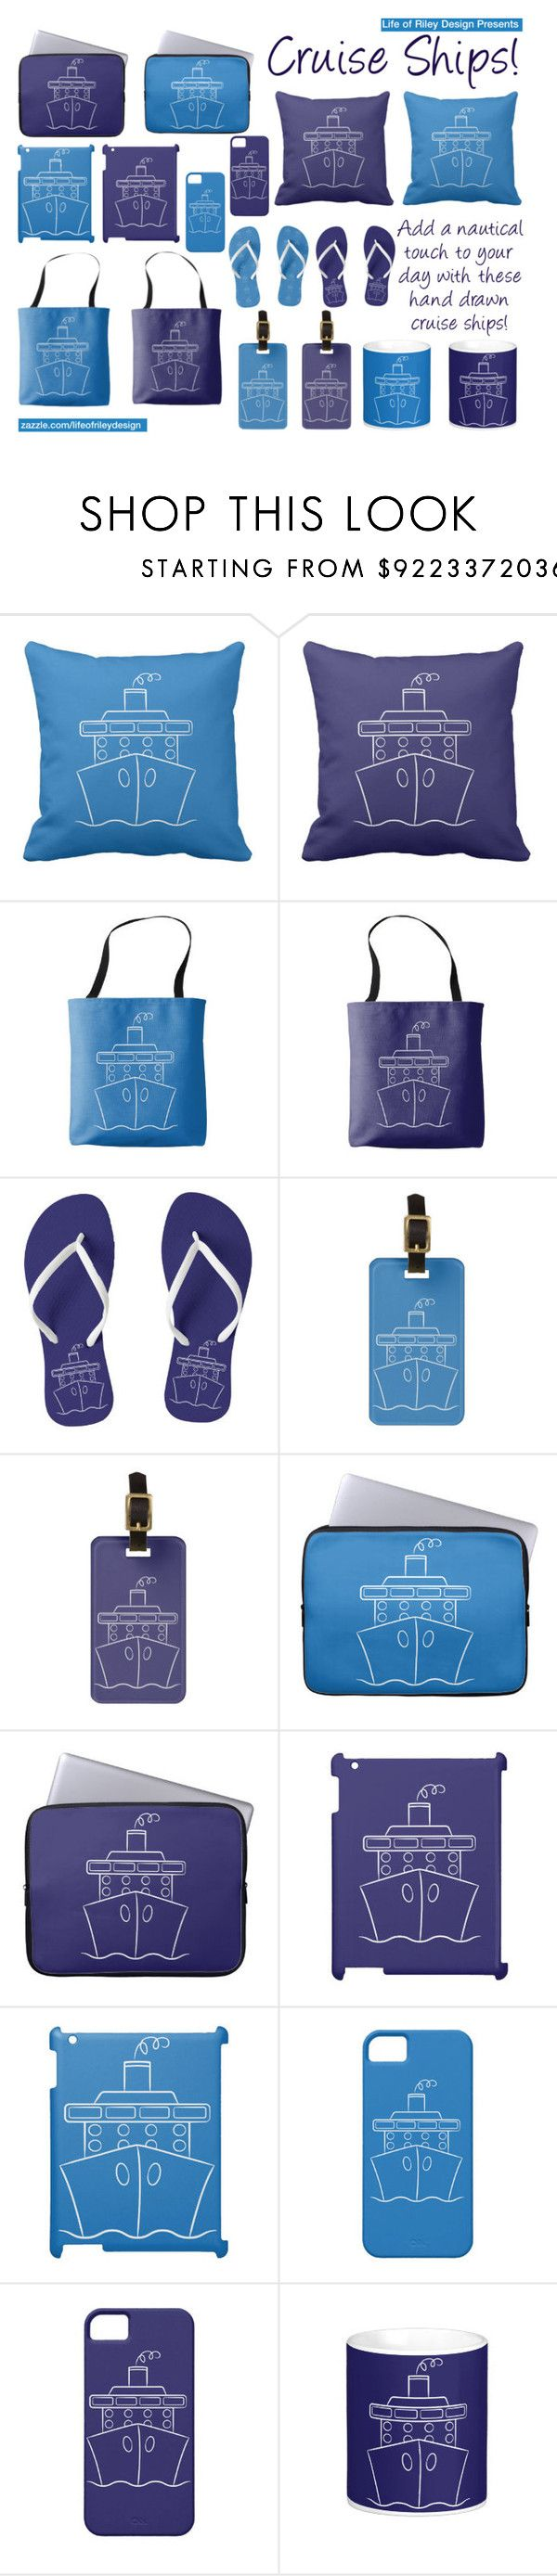 """Cruise Ships!"" by lifeofrileydesign on Polyvore"